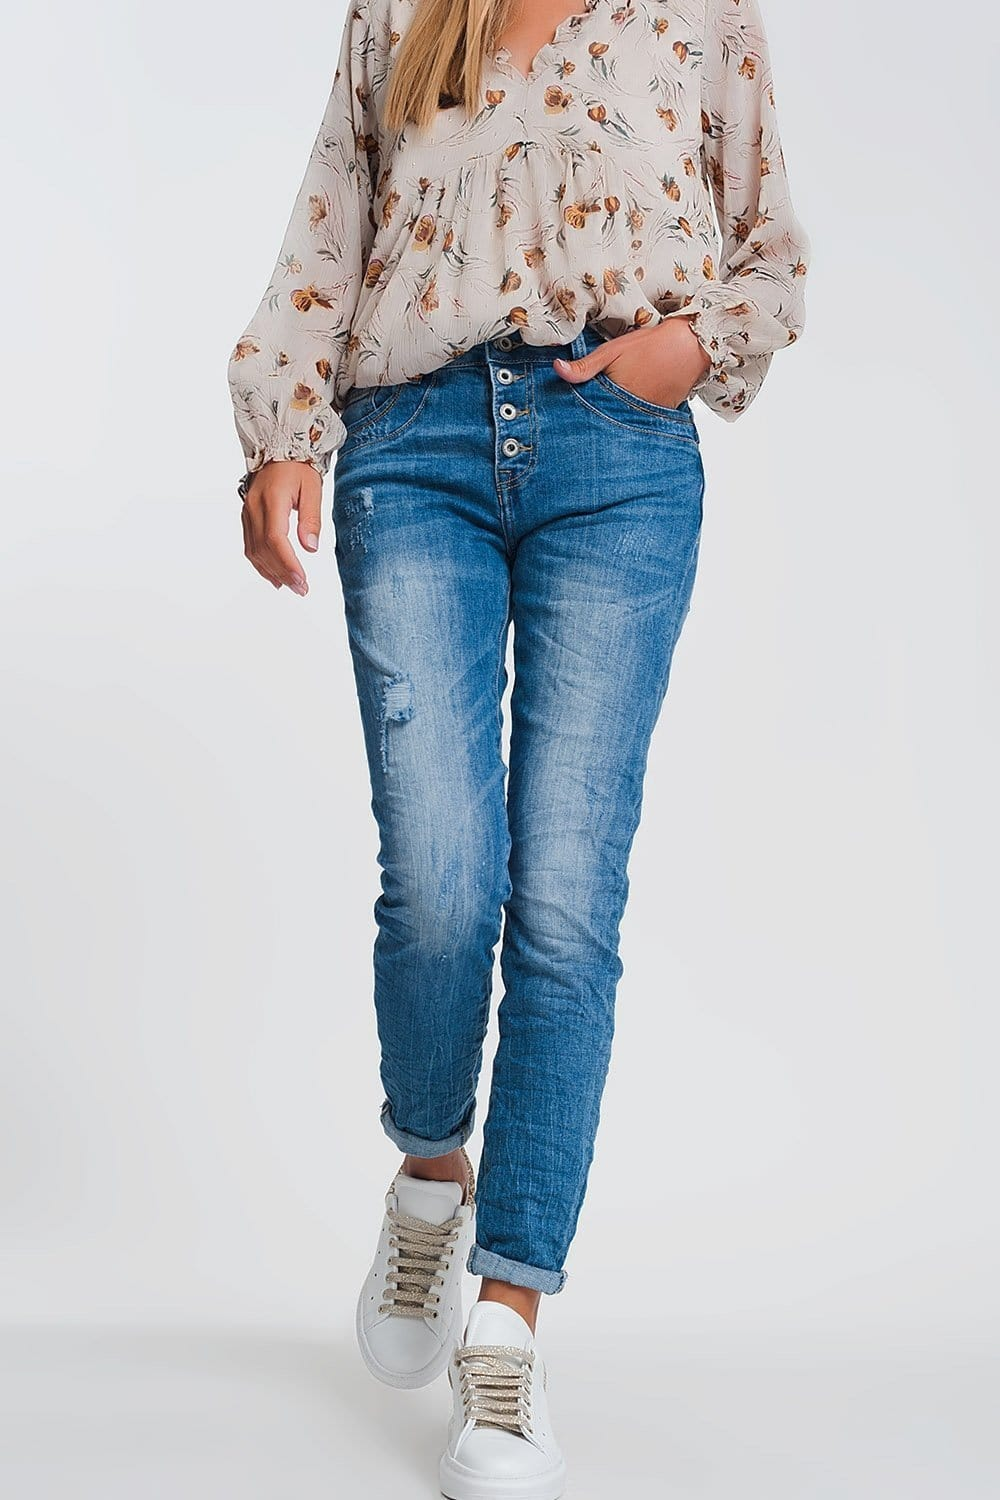 Wrinkled Boyfriend Jeans in Light Denim with Ripped Details - Himelhoch's